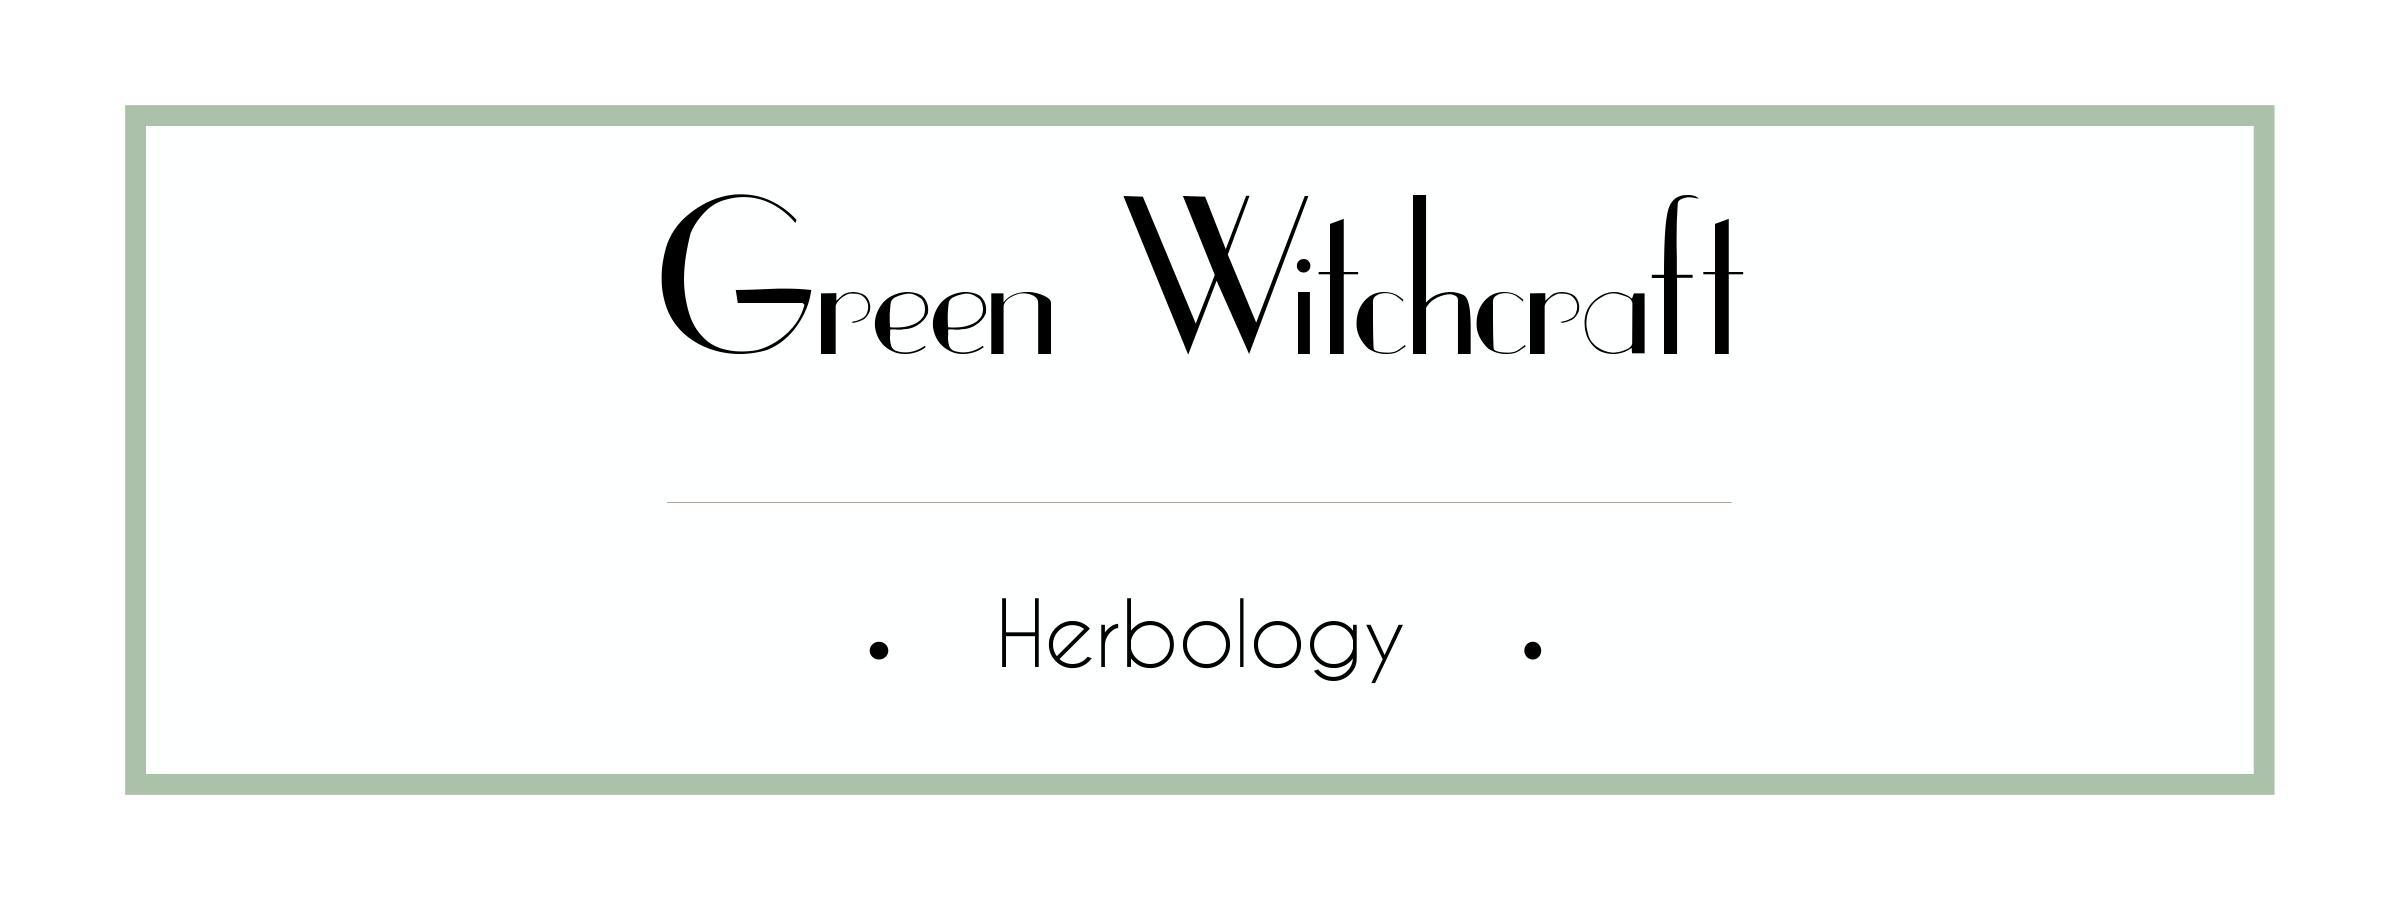 Green Witchcraft Course - Herbology